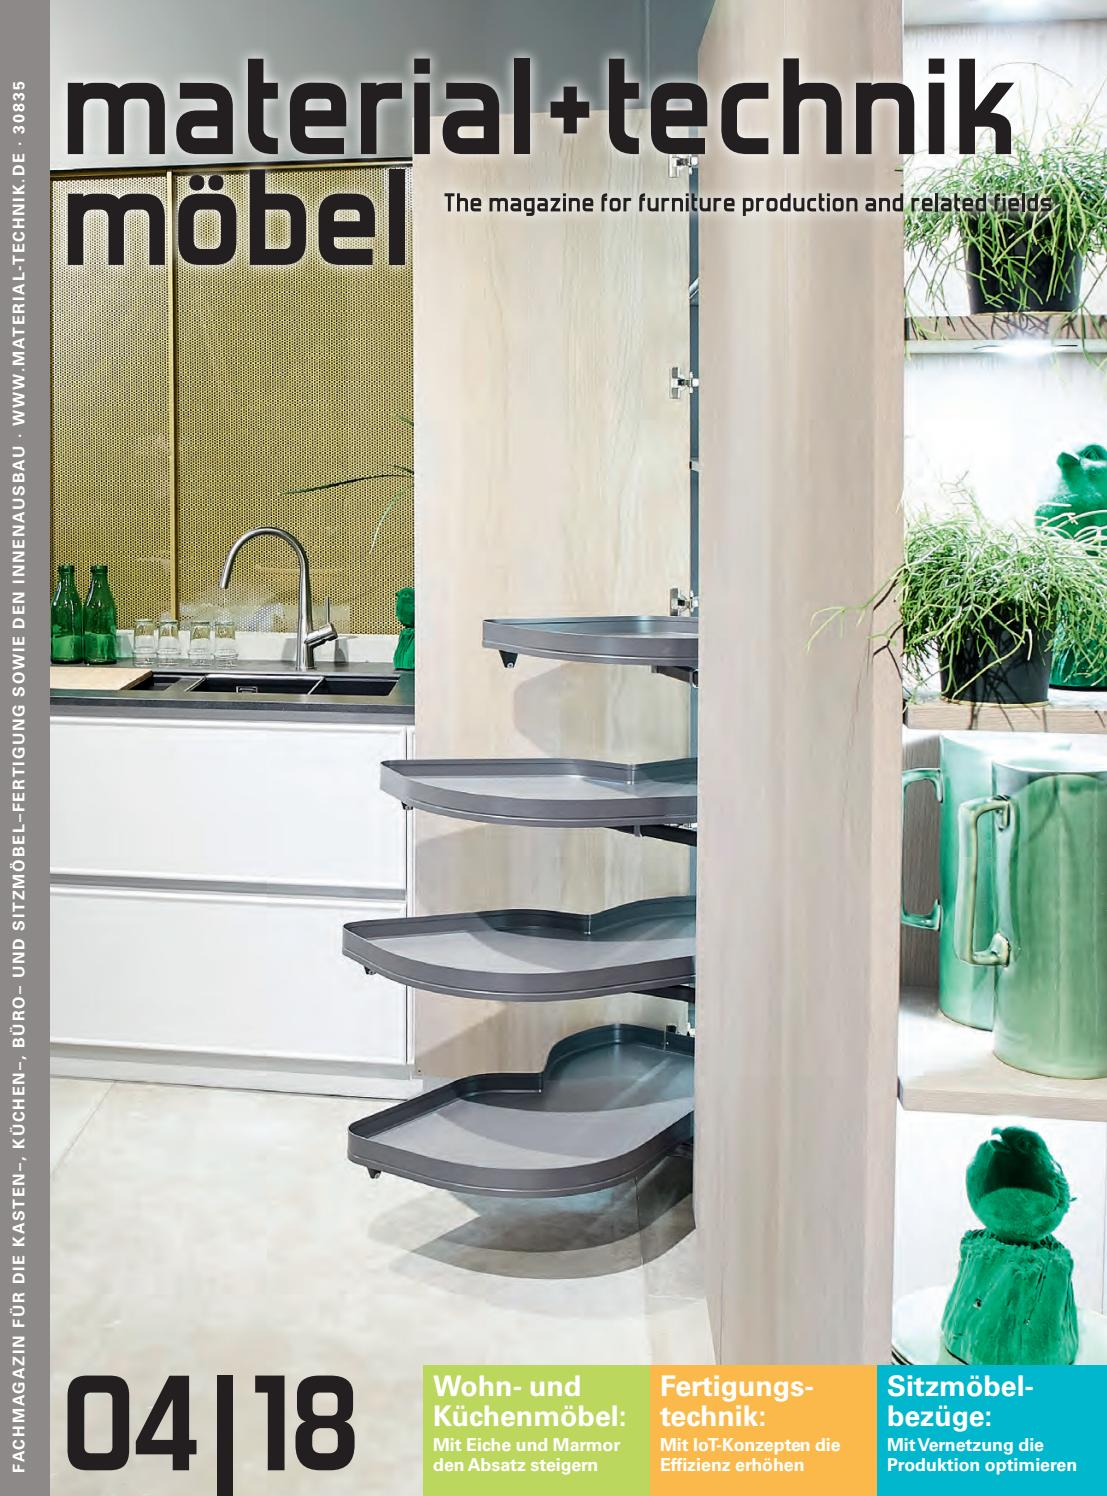 Material+technik Möbel Ausgabe 04/2018 By Material + Technik Möbel   Issuu